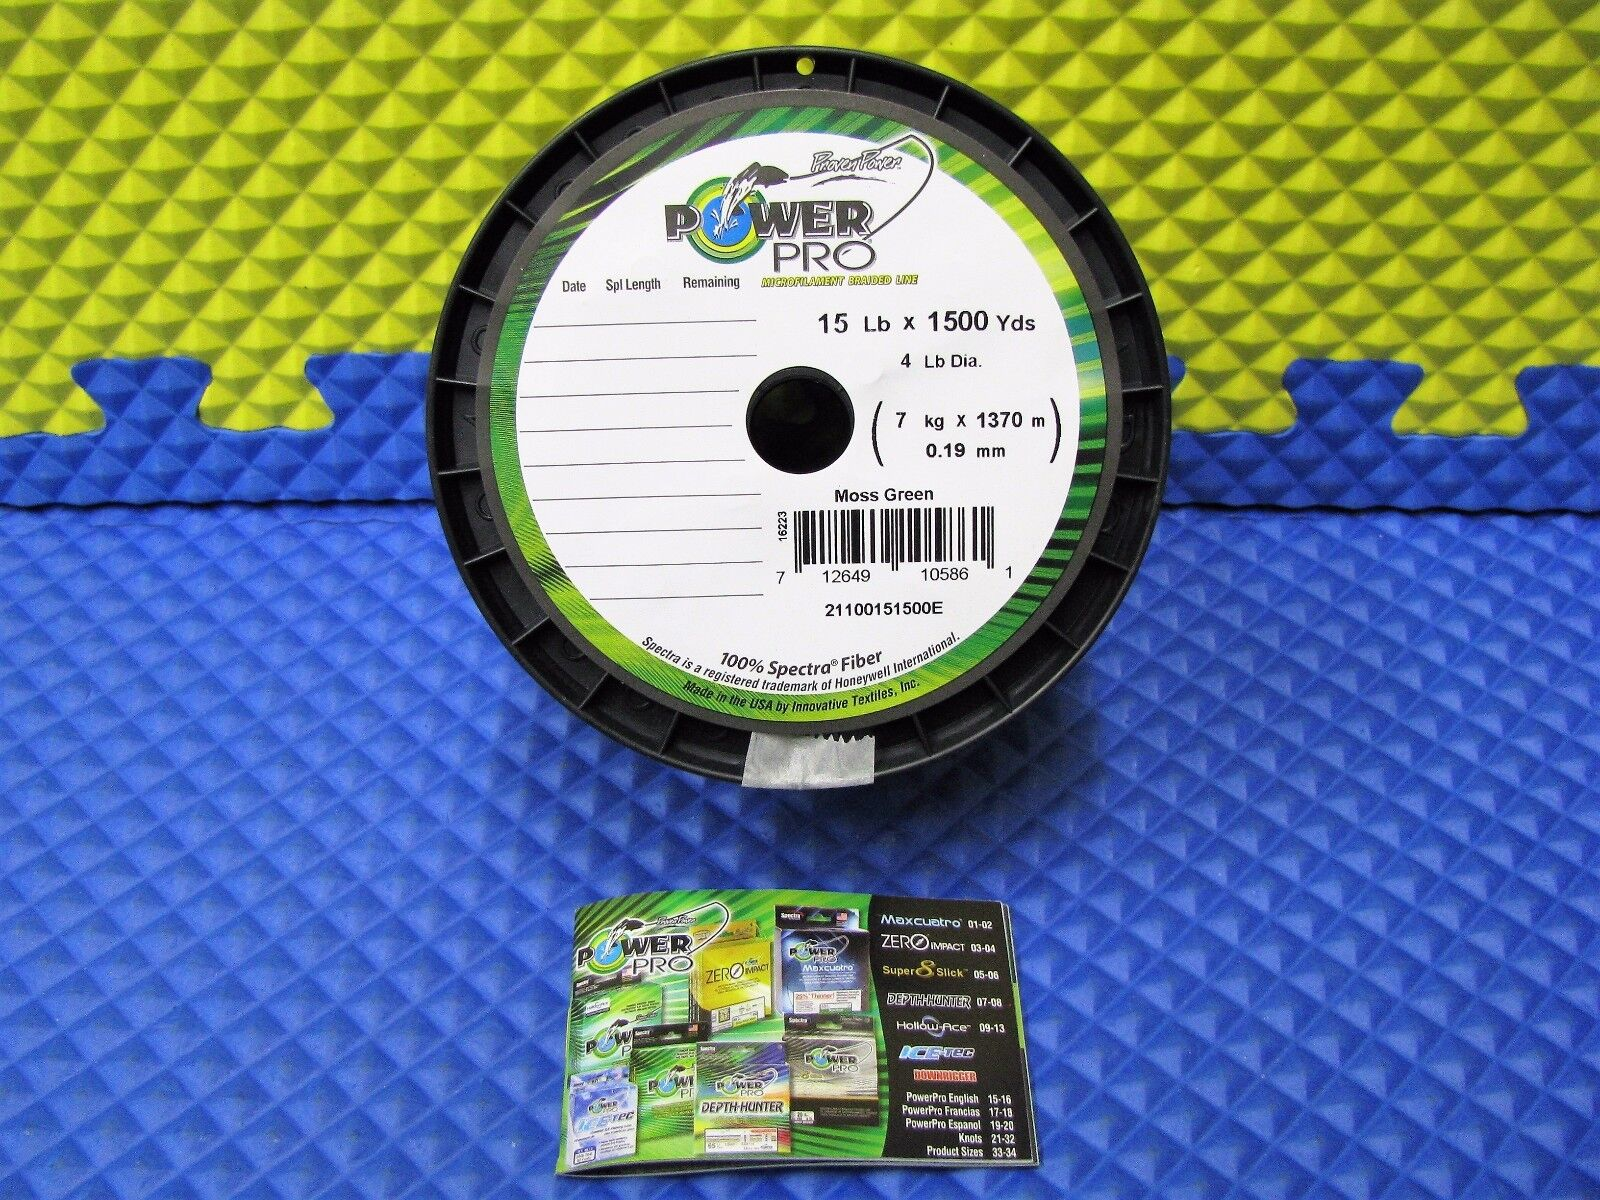 Power Pro Microfilament Braided Fishing Line 15 lb. 1500 yds. Moss Green 16223